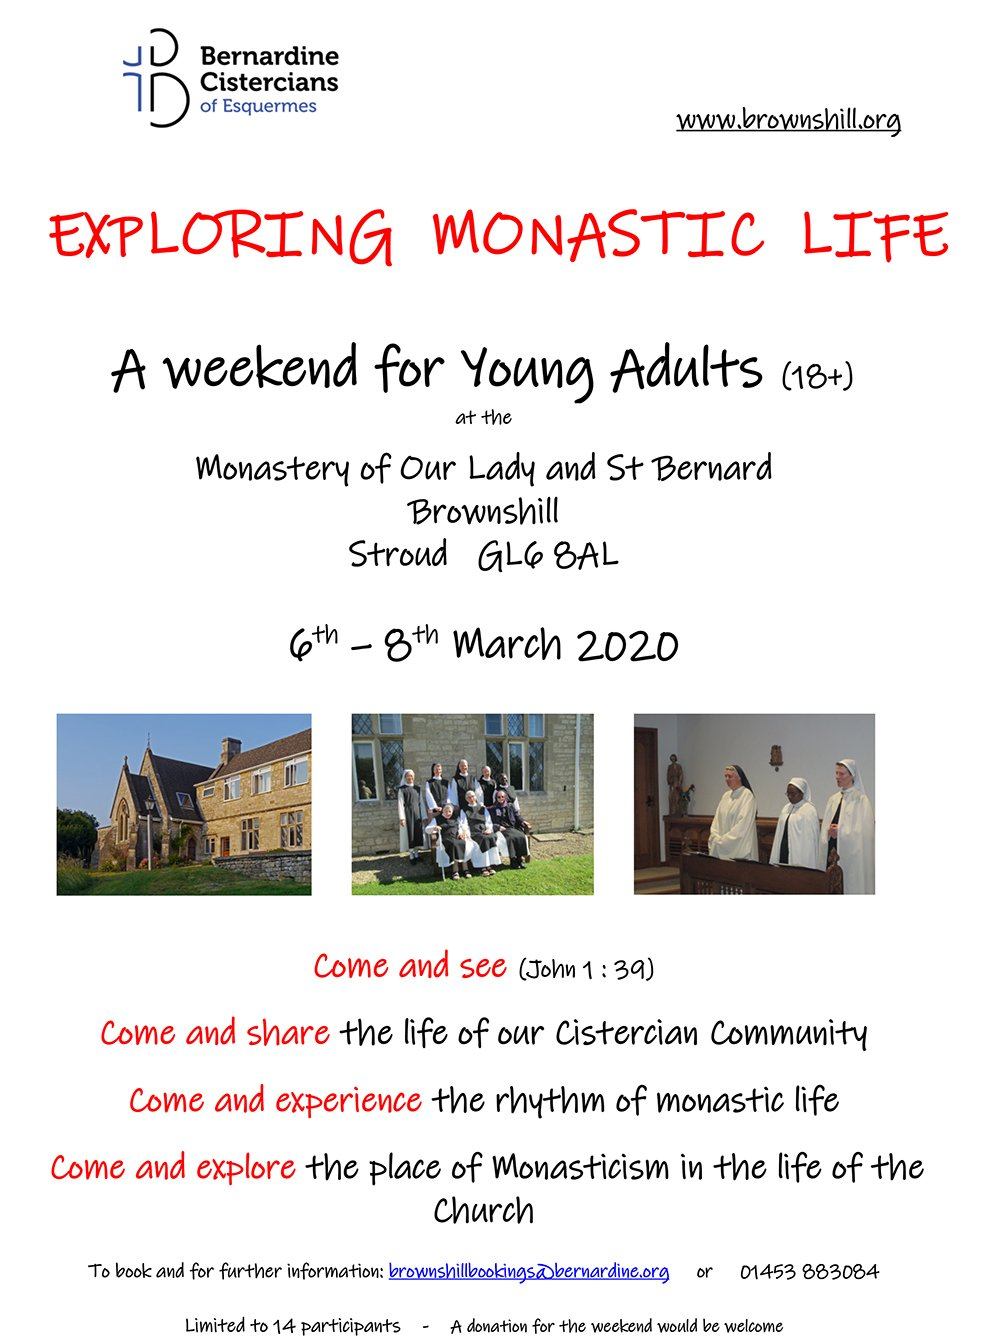 EXPLORING MONASTIC LIFE - A weekend for Young Adults (18+) @ Monastery of Our Lady and St Bernard Brownshill Stroud | Brownshill | England | United Kingdom